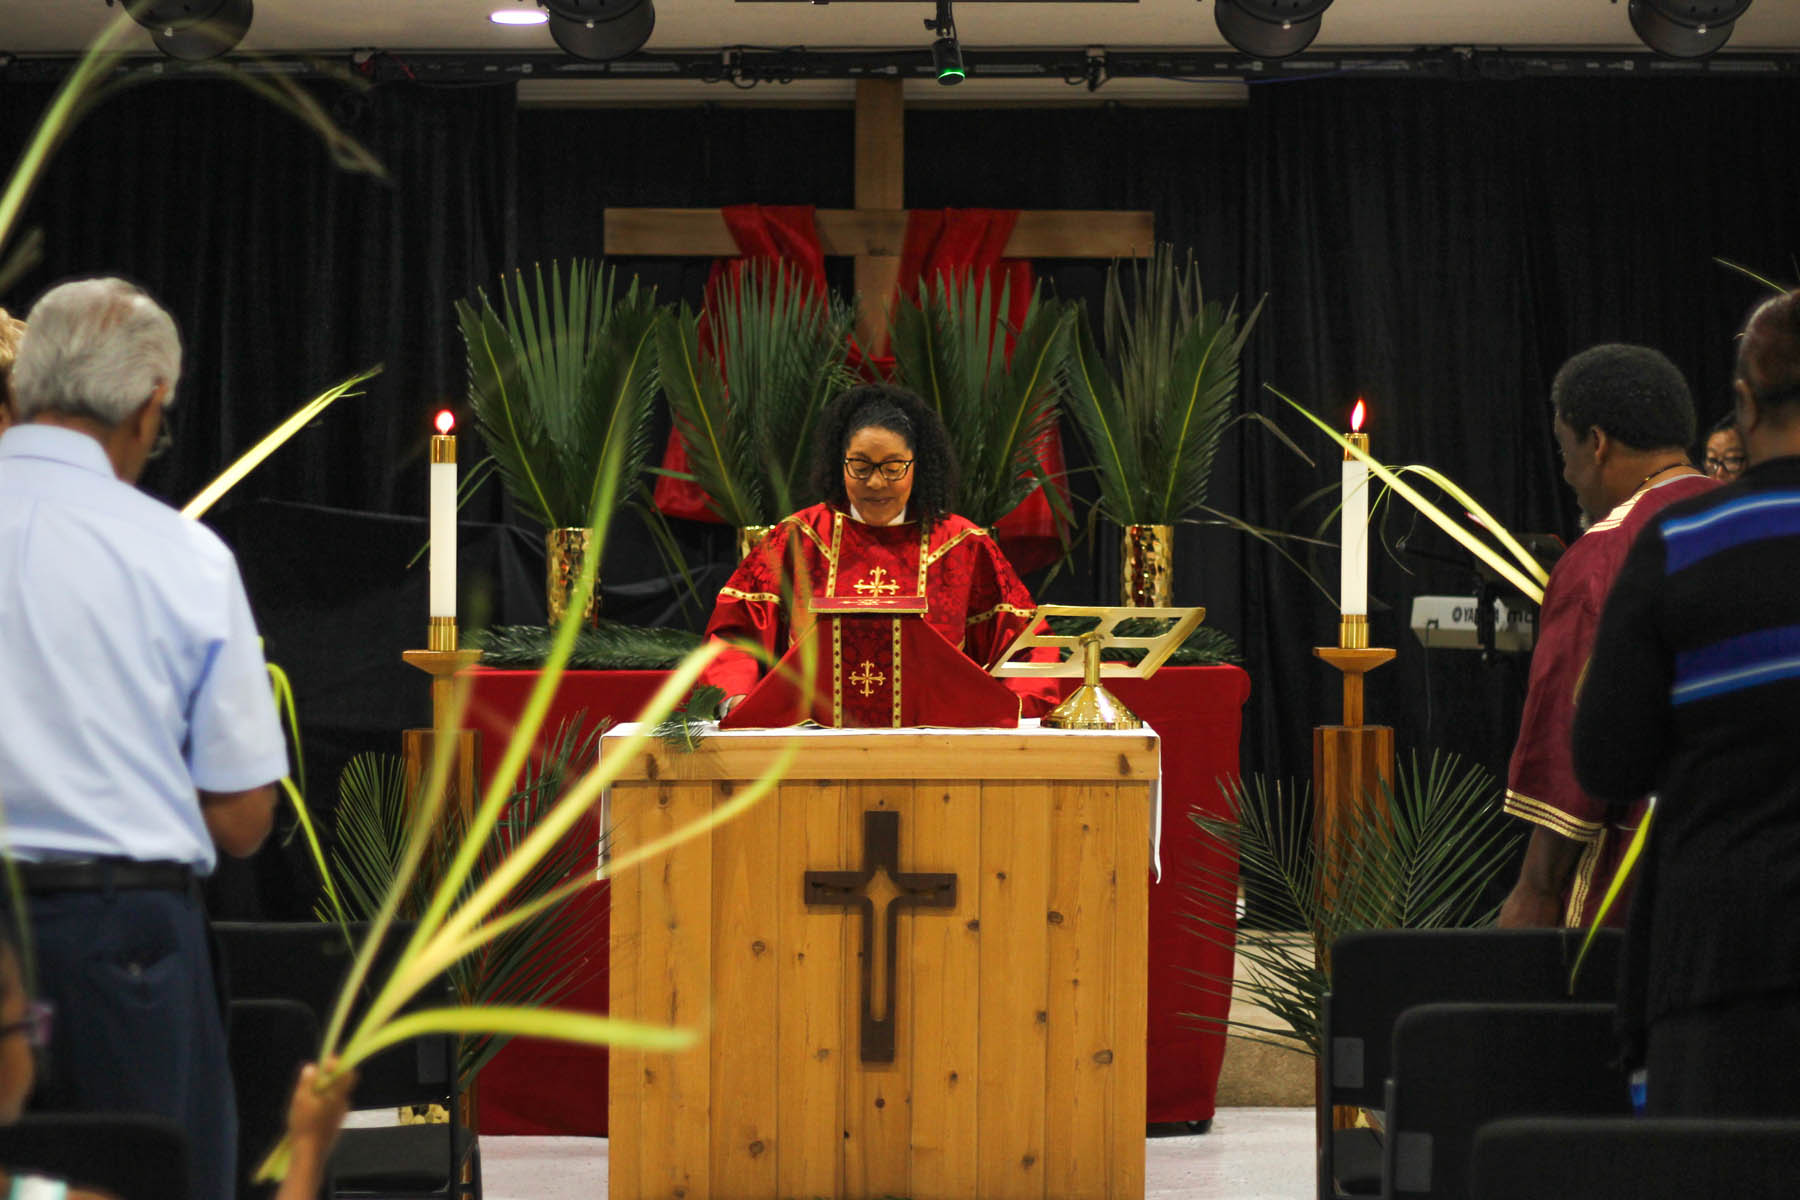 2019-04-14-WCEC-Palm-Sunday-056